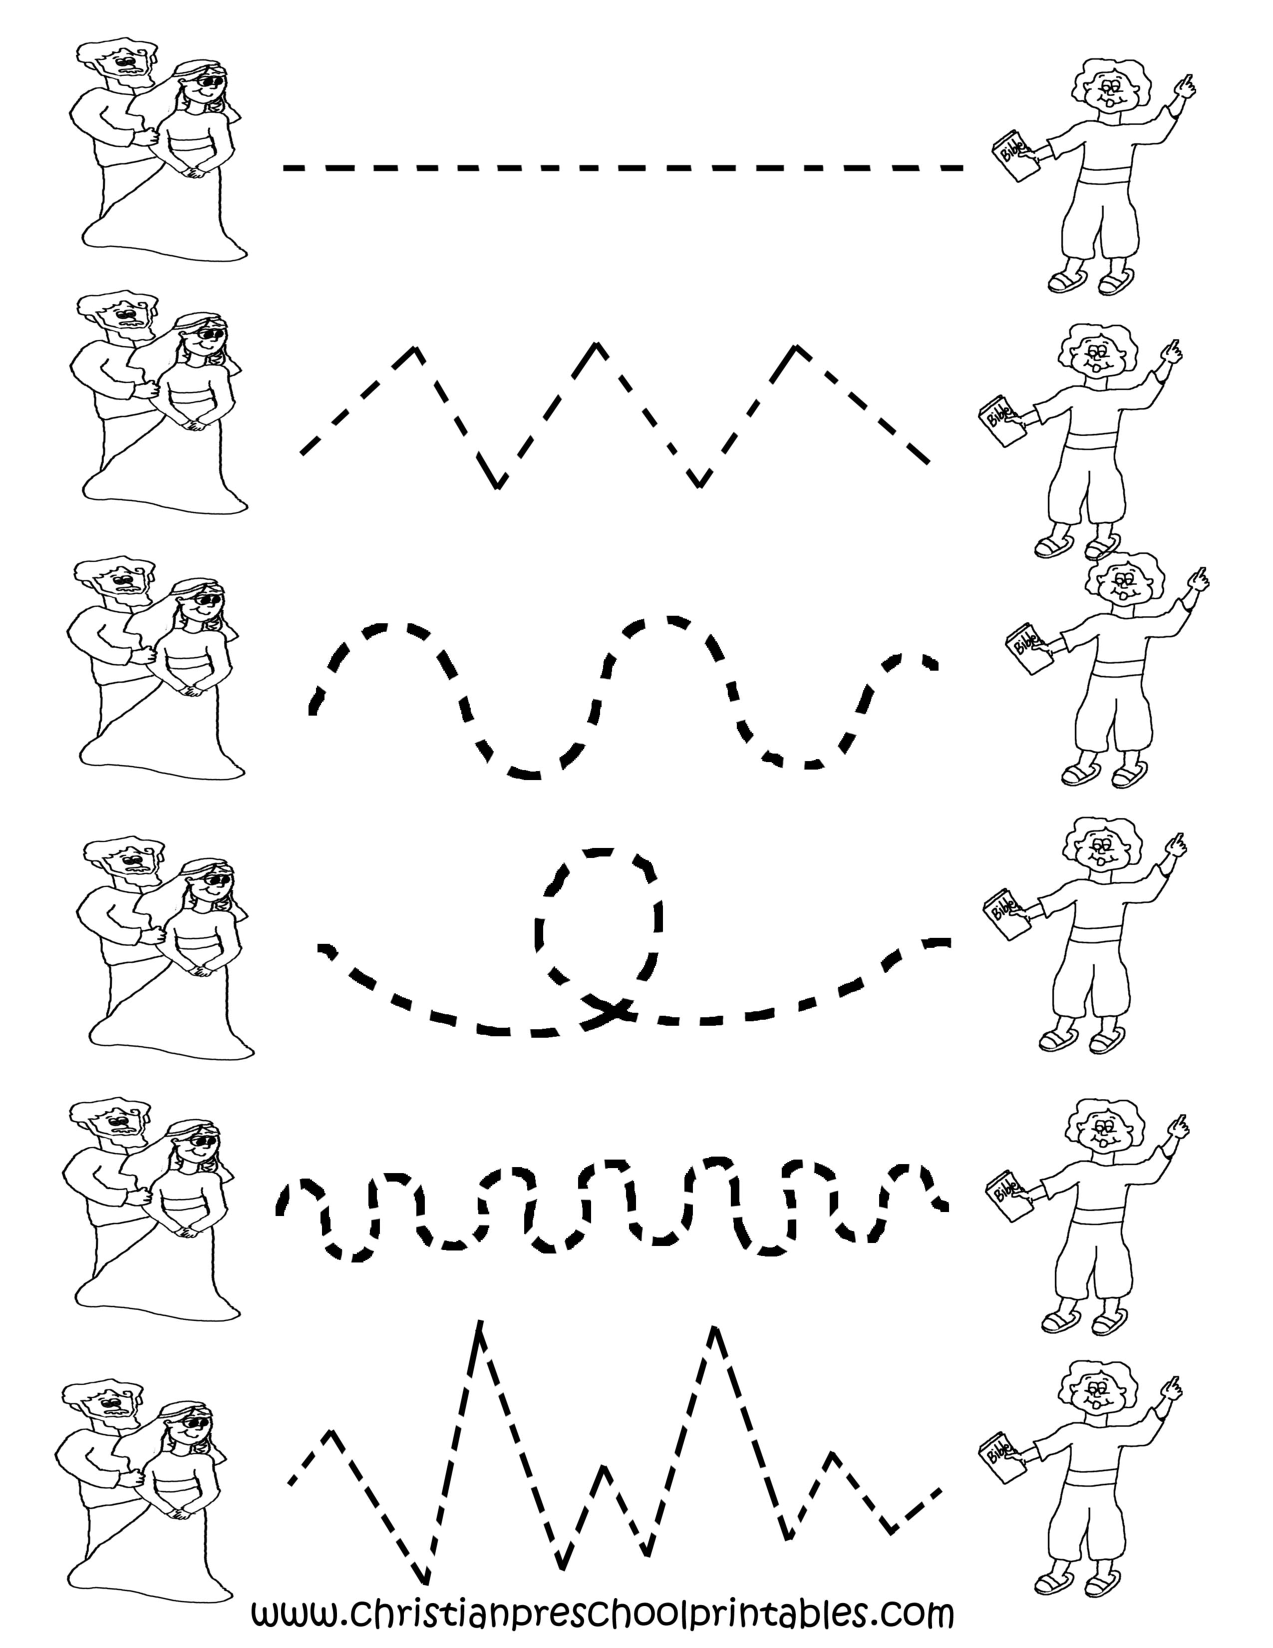 Preschool Tracing Worksheets Cakepins